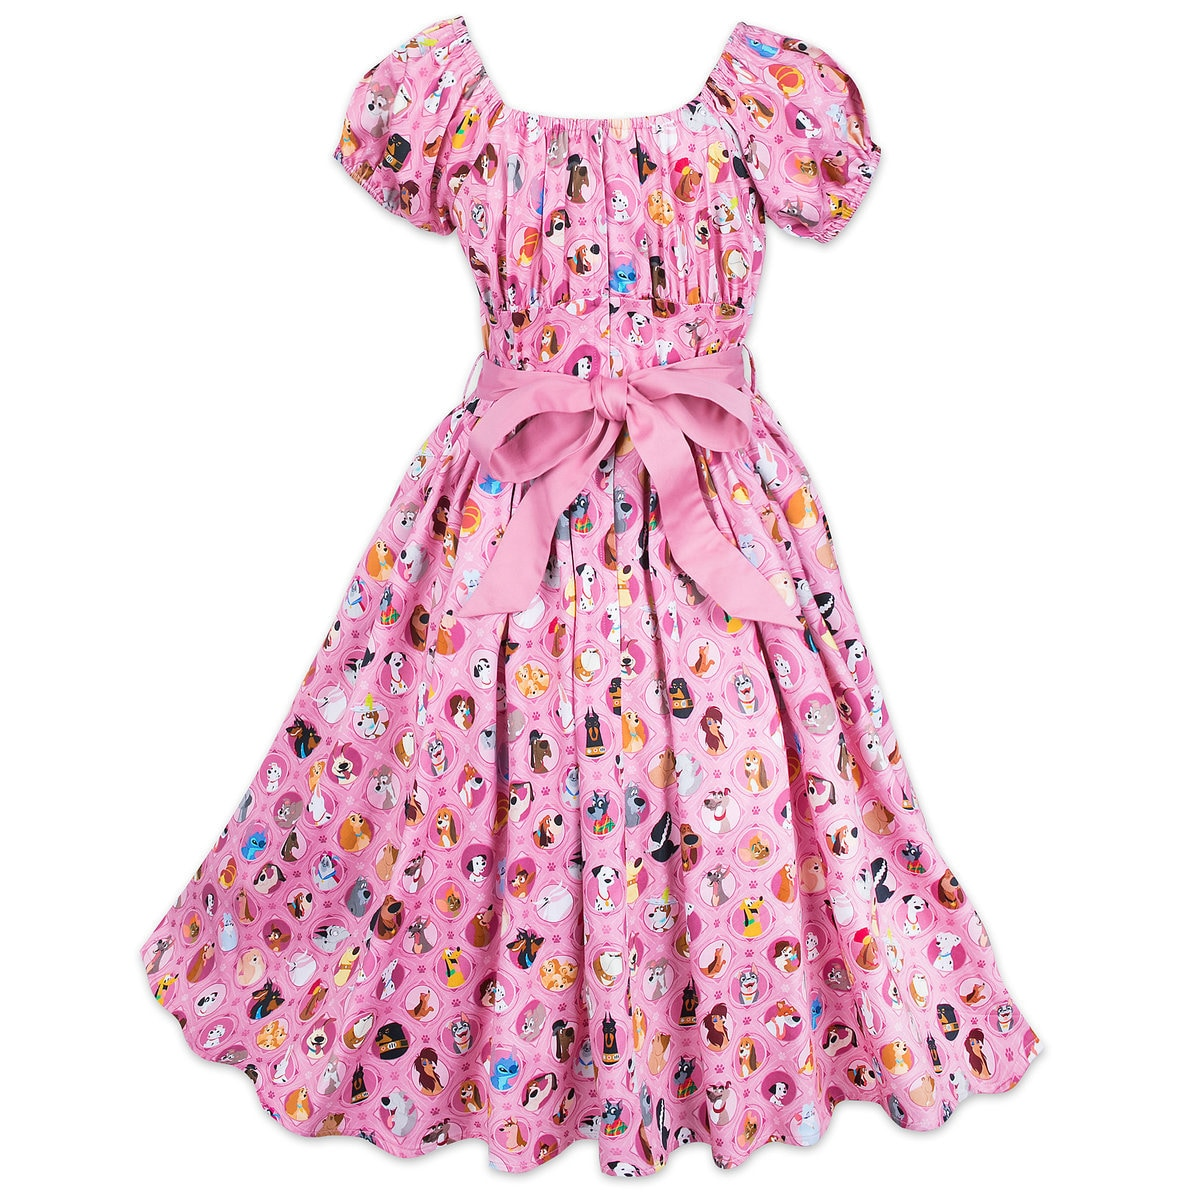 541d729fd Product Image of Disney Dogs Dress for Women # 3